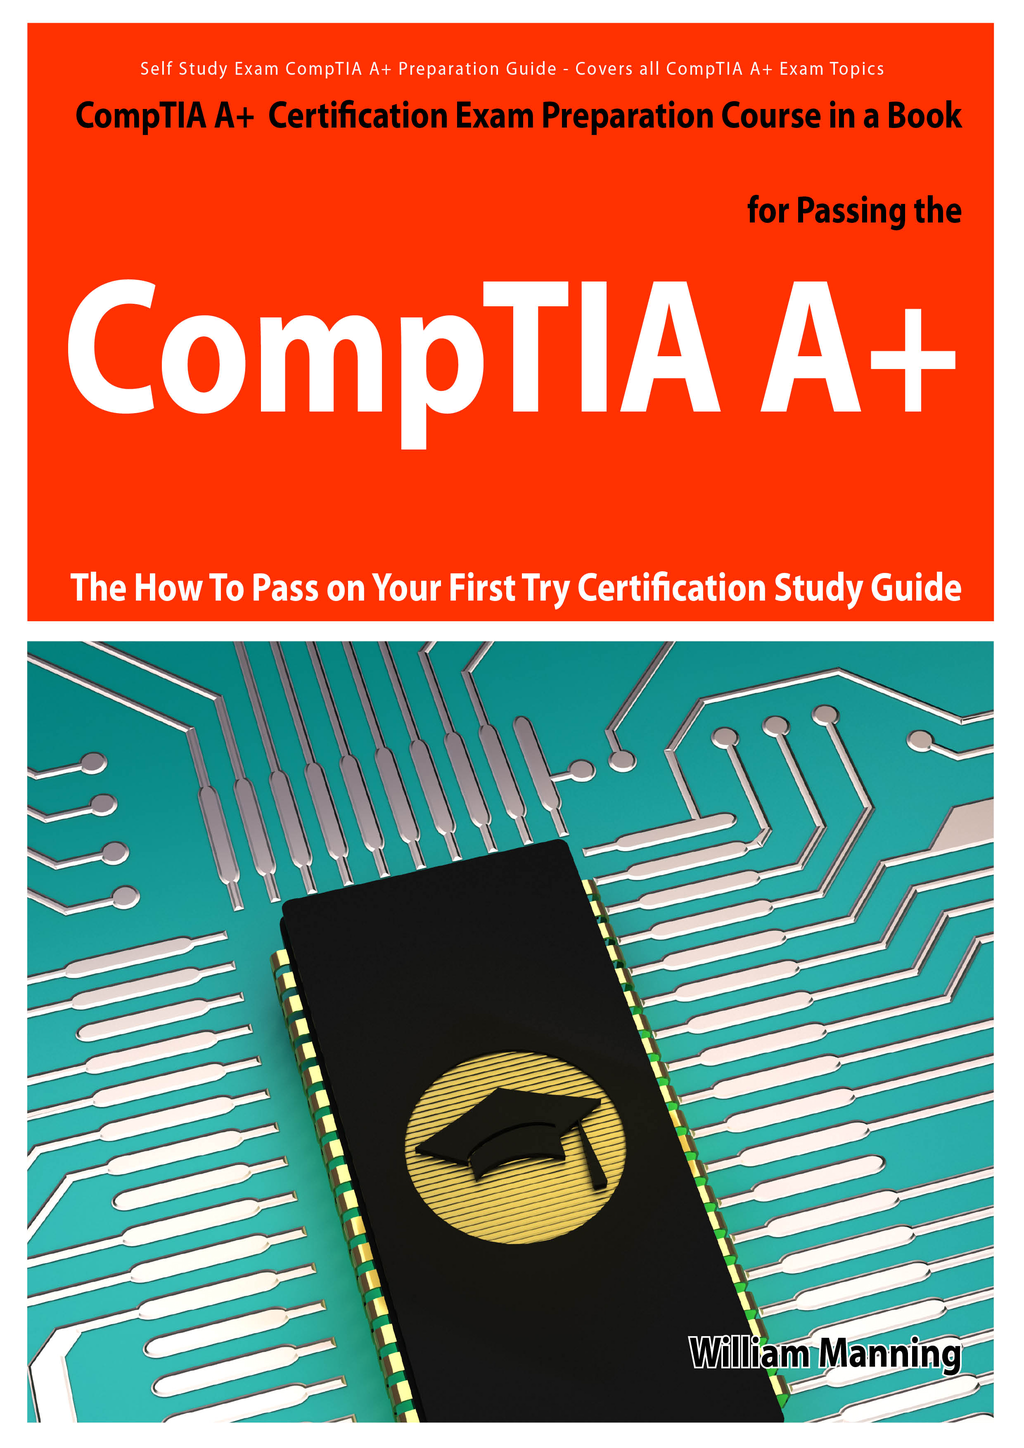 CompTIA A+ Exam Preparation Course in a Book for Passing the CompTIA A+ Certified Exam - The How To Pass on Your First Try Certification Study Guide By: William Manning